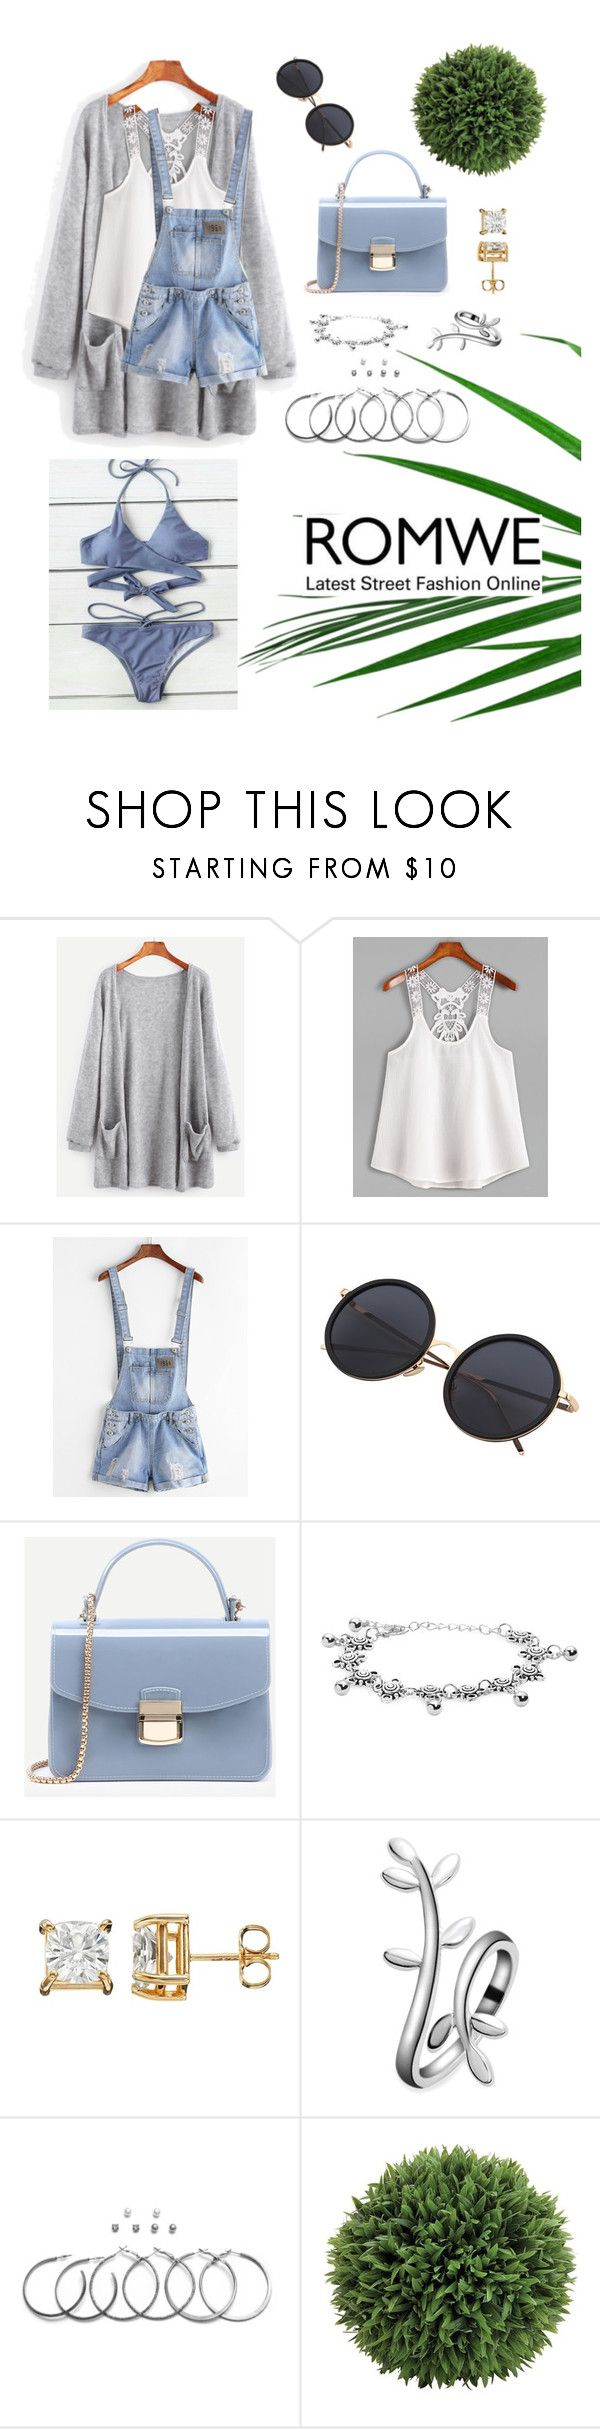 """Fresh Kicks"" by embracelinks ❤ liked on Polyvore featuring Ball"